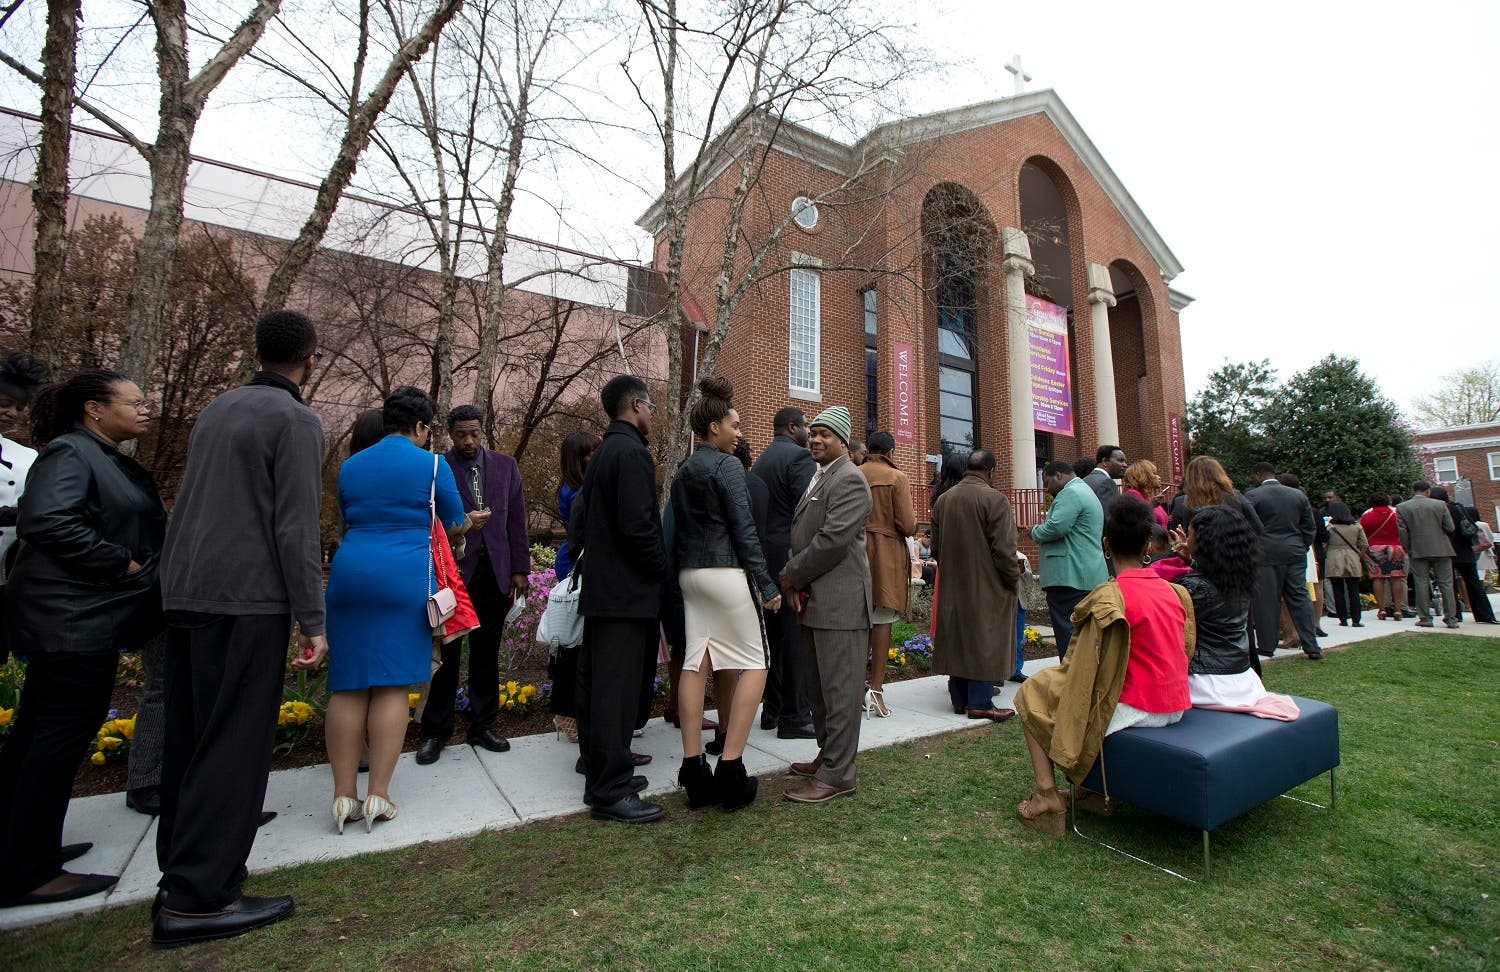 Churchgoers line up outside the historic Alfred Street Baptist Church in Alexandria, Va., Sunday, March 27, 2016, where President Barack Obama and his family joined the congregation to celebrate Easter. (AP)